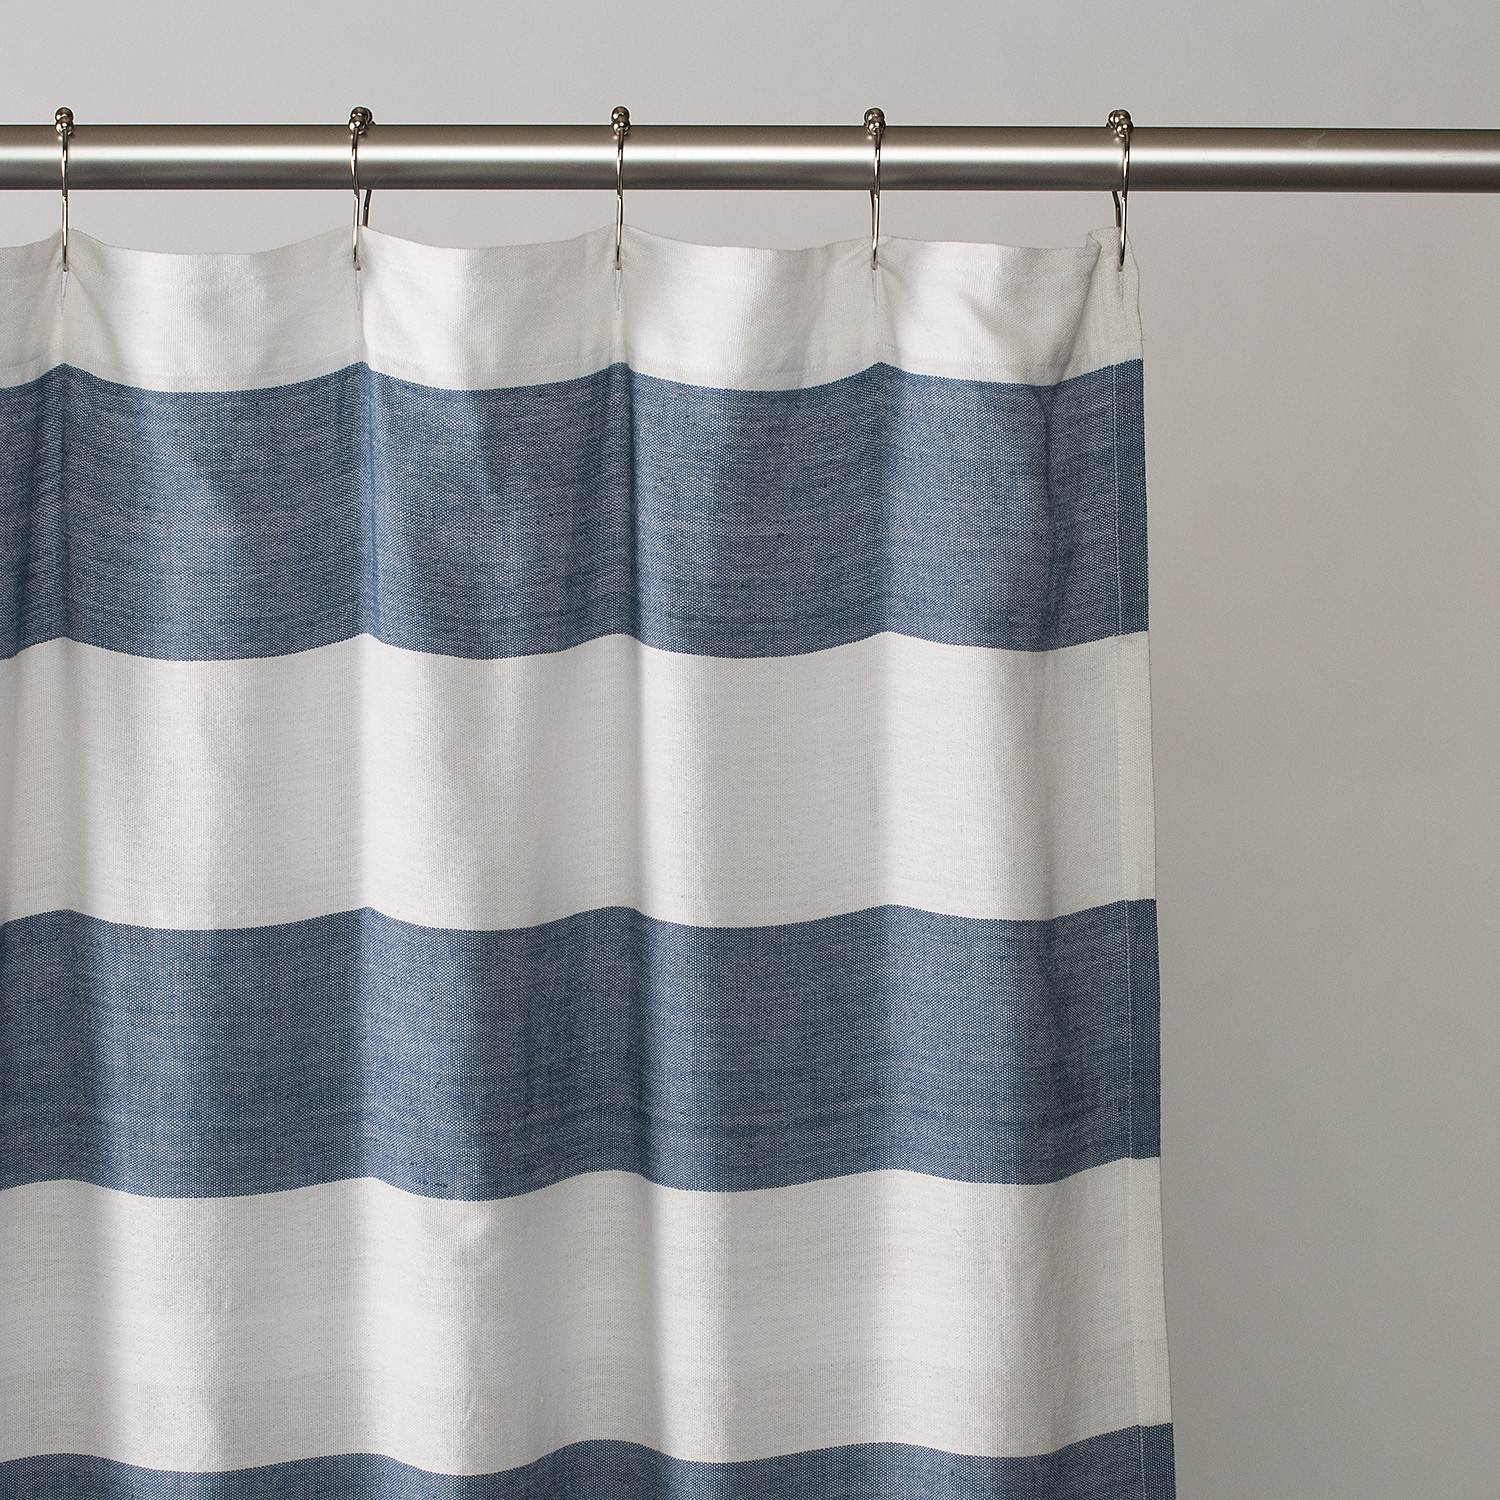 Grey White Striped Shower Curtain. Fashionable Striped Shower Curtain The Homy Design inside proportions 1500  X Blue And White Curtains Ideas